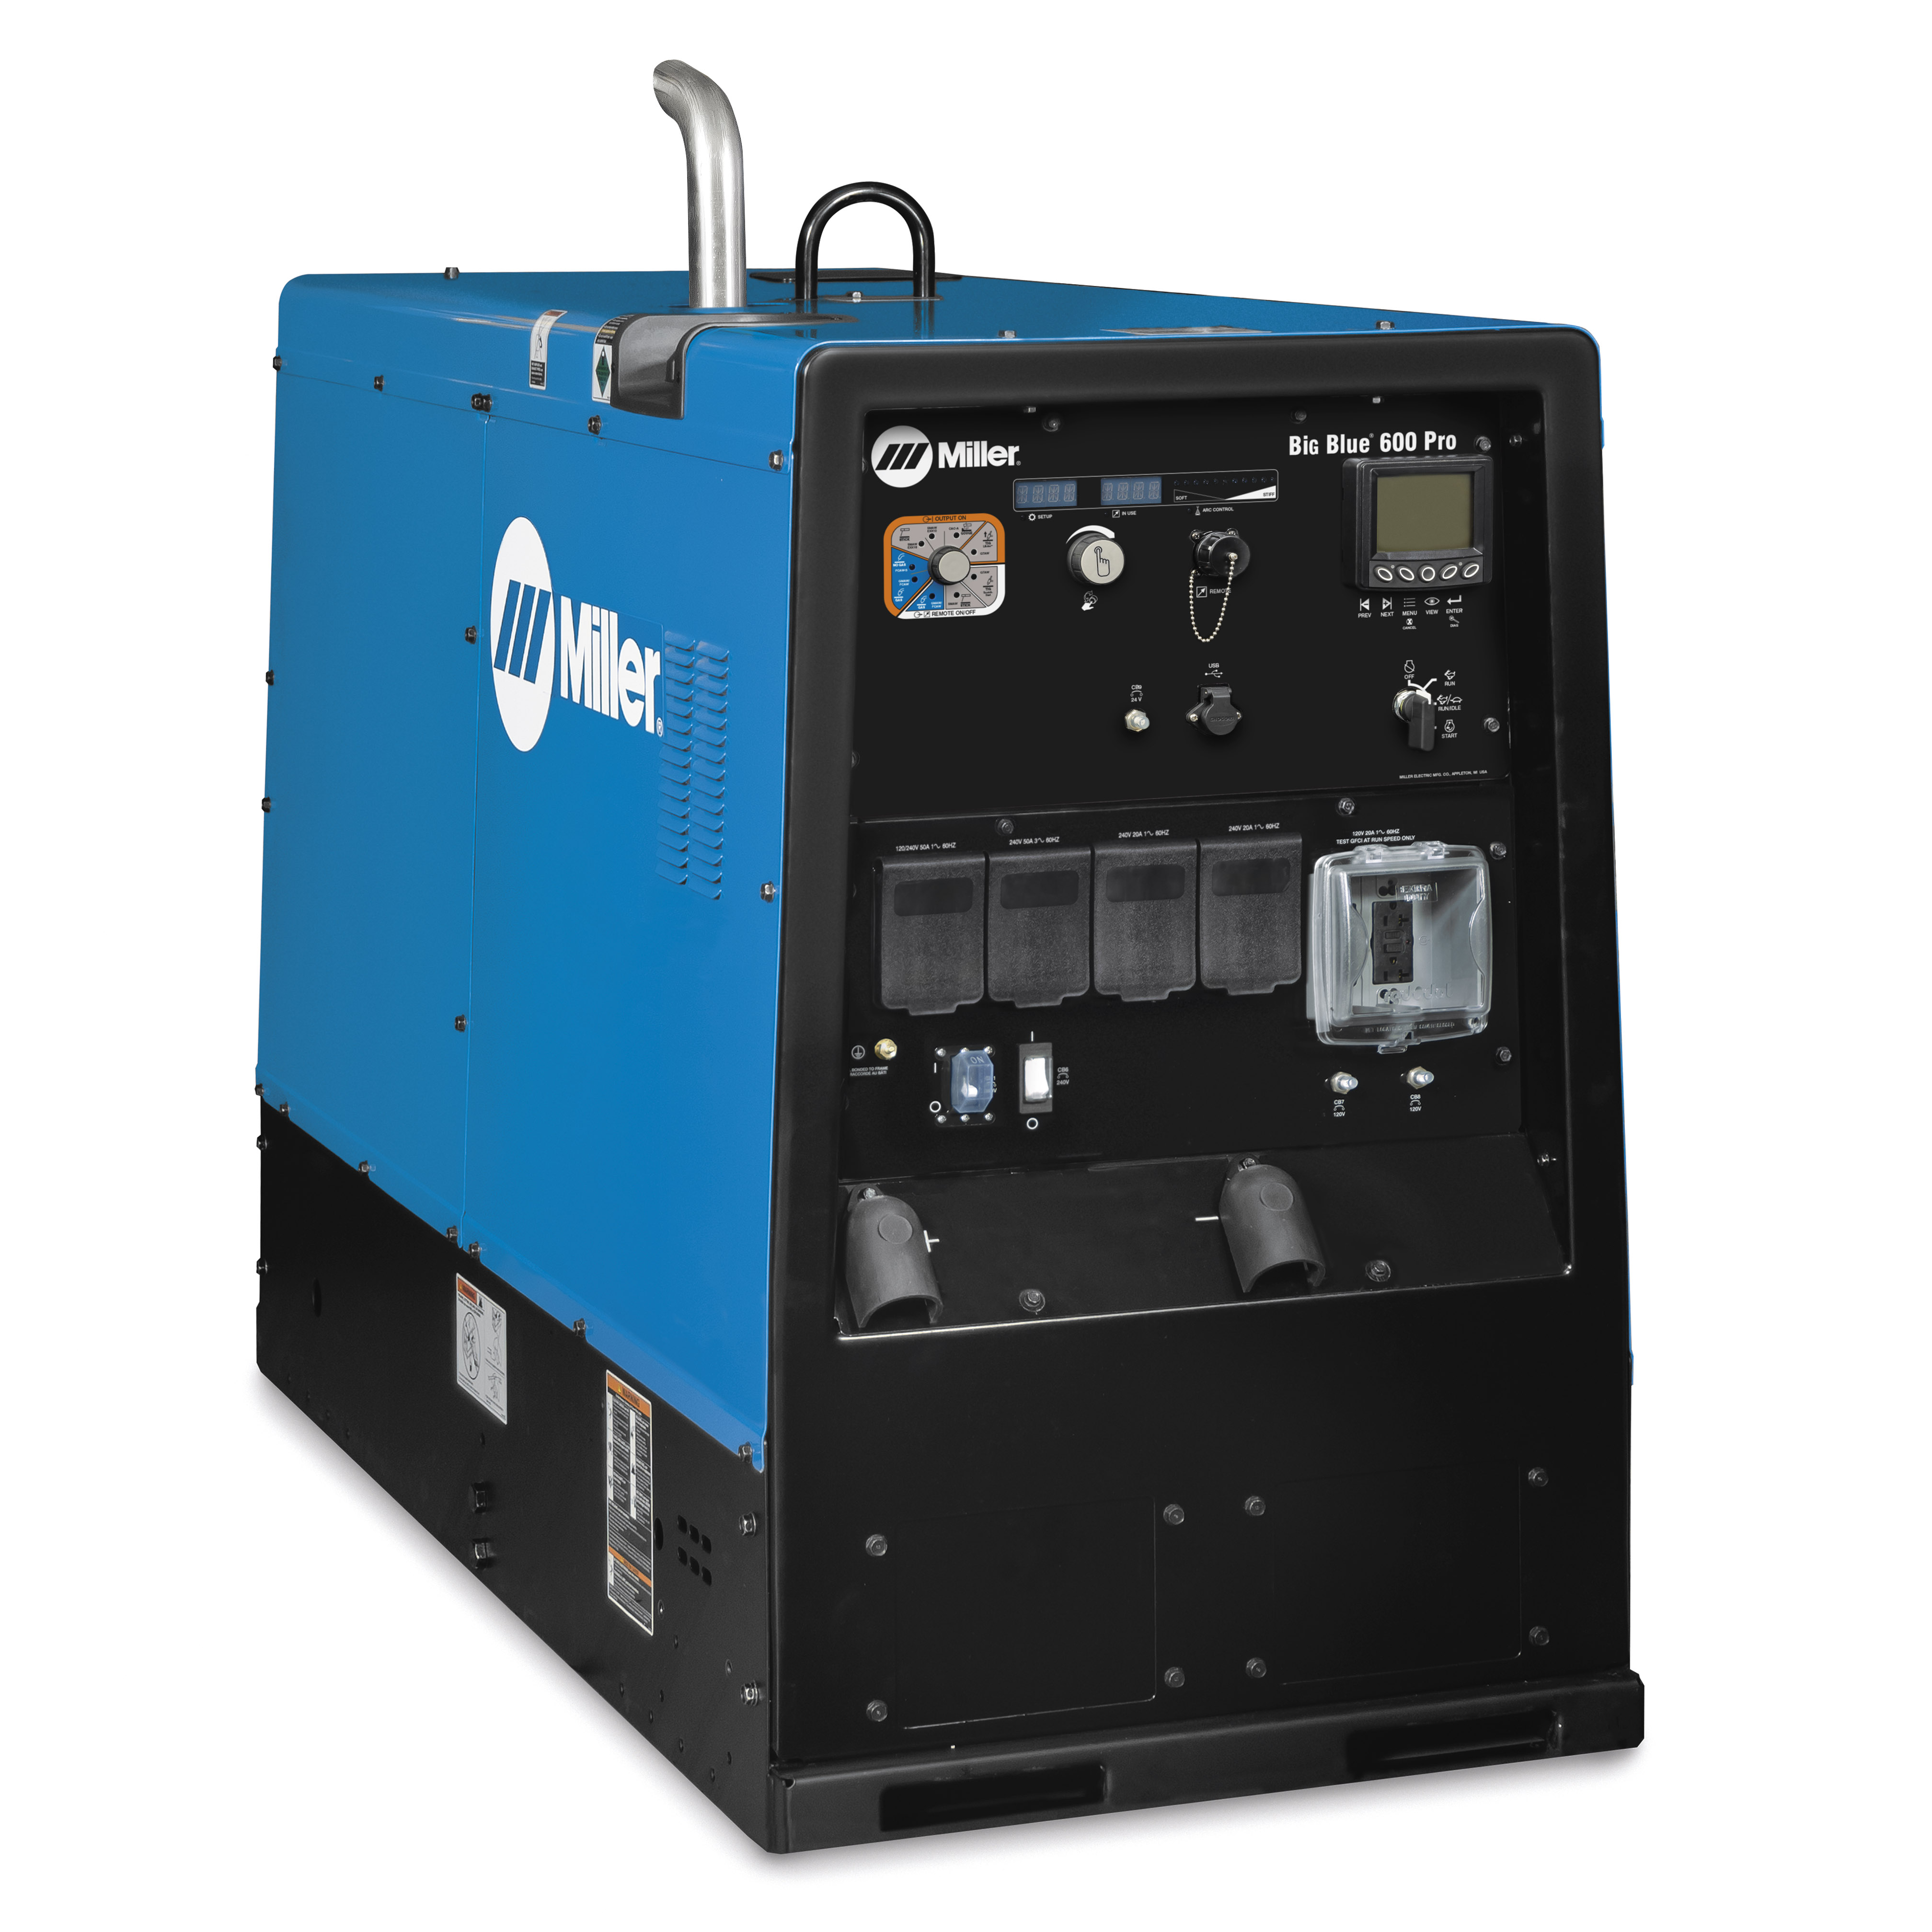 medium resolution of big blue 600 pro engine driven welder generator millerwelds troubleshooting circuit diagram for welding generator miller